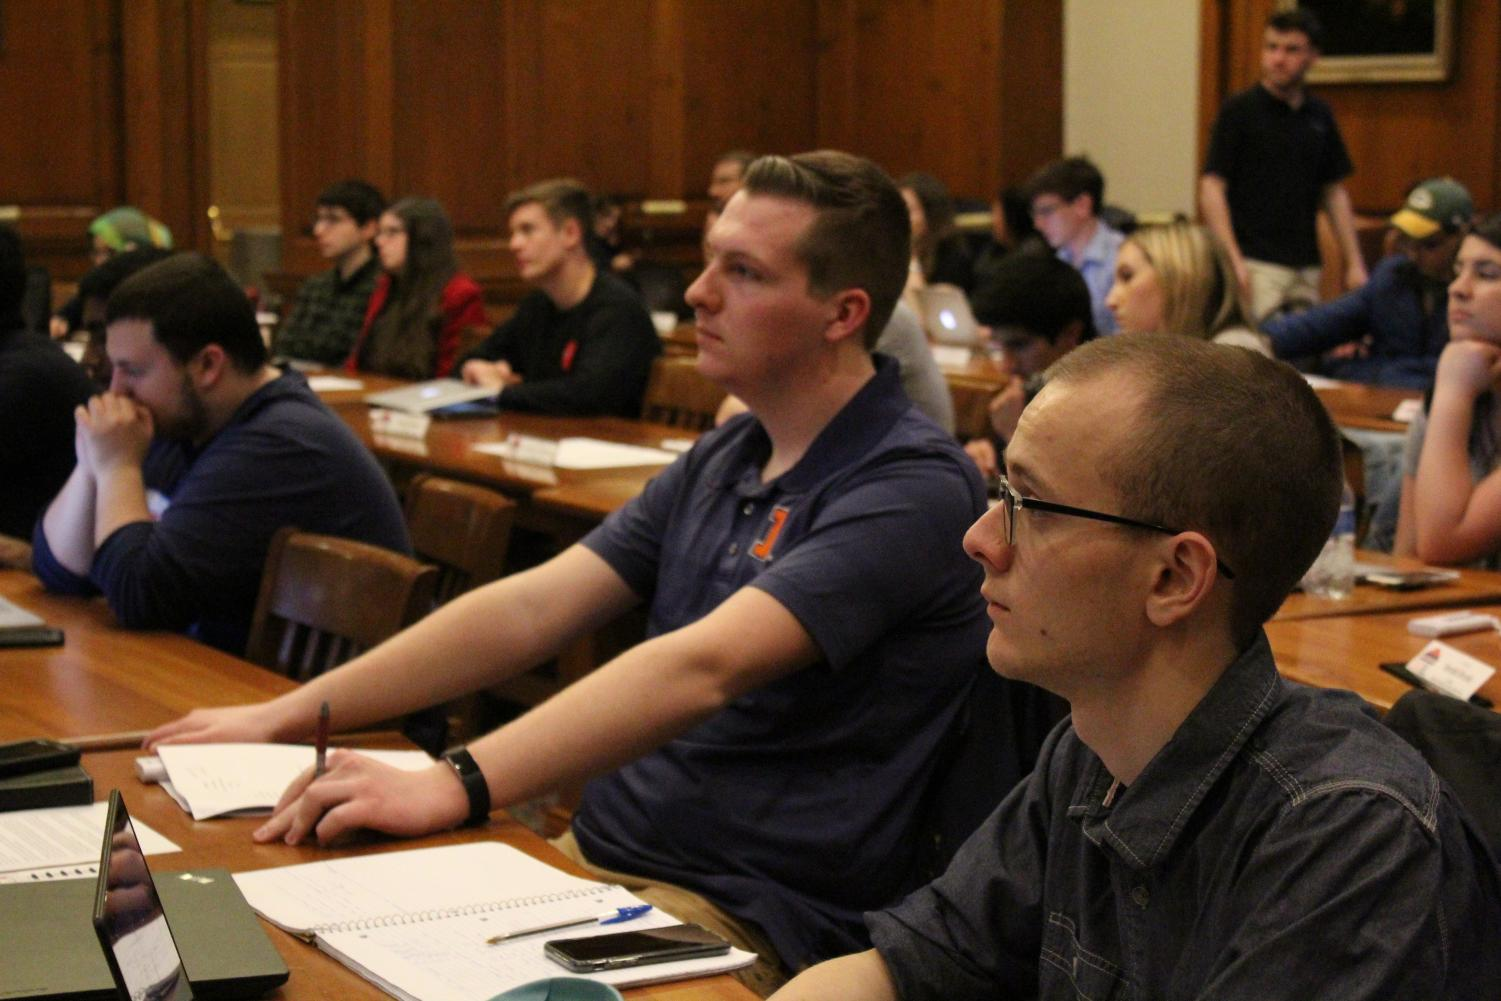 Members of the Illinois Student Government sit at their last meeting of the current assembly. They instituted a grade point average requirement and compensation resolution for after Spring 2019.